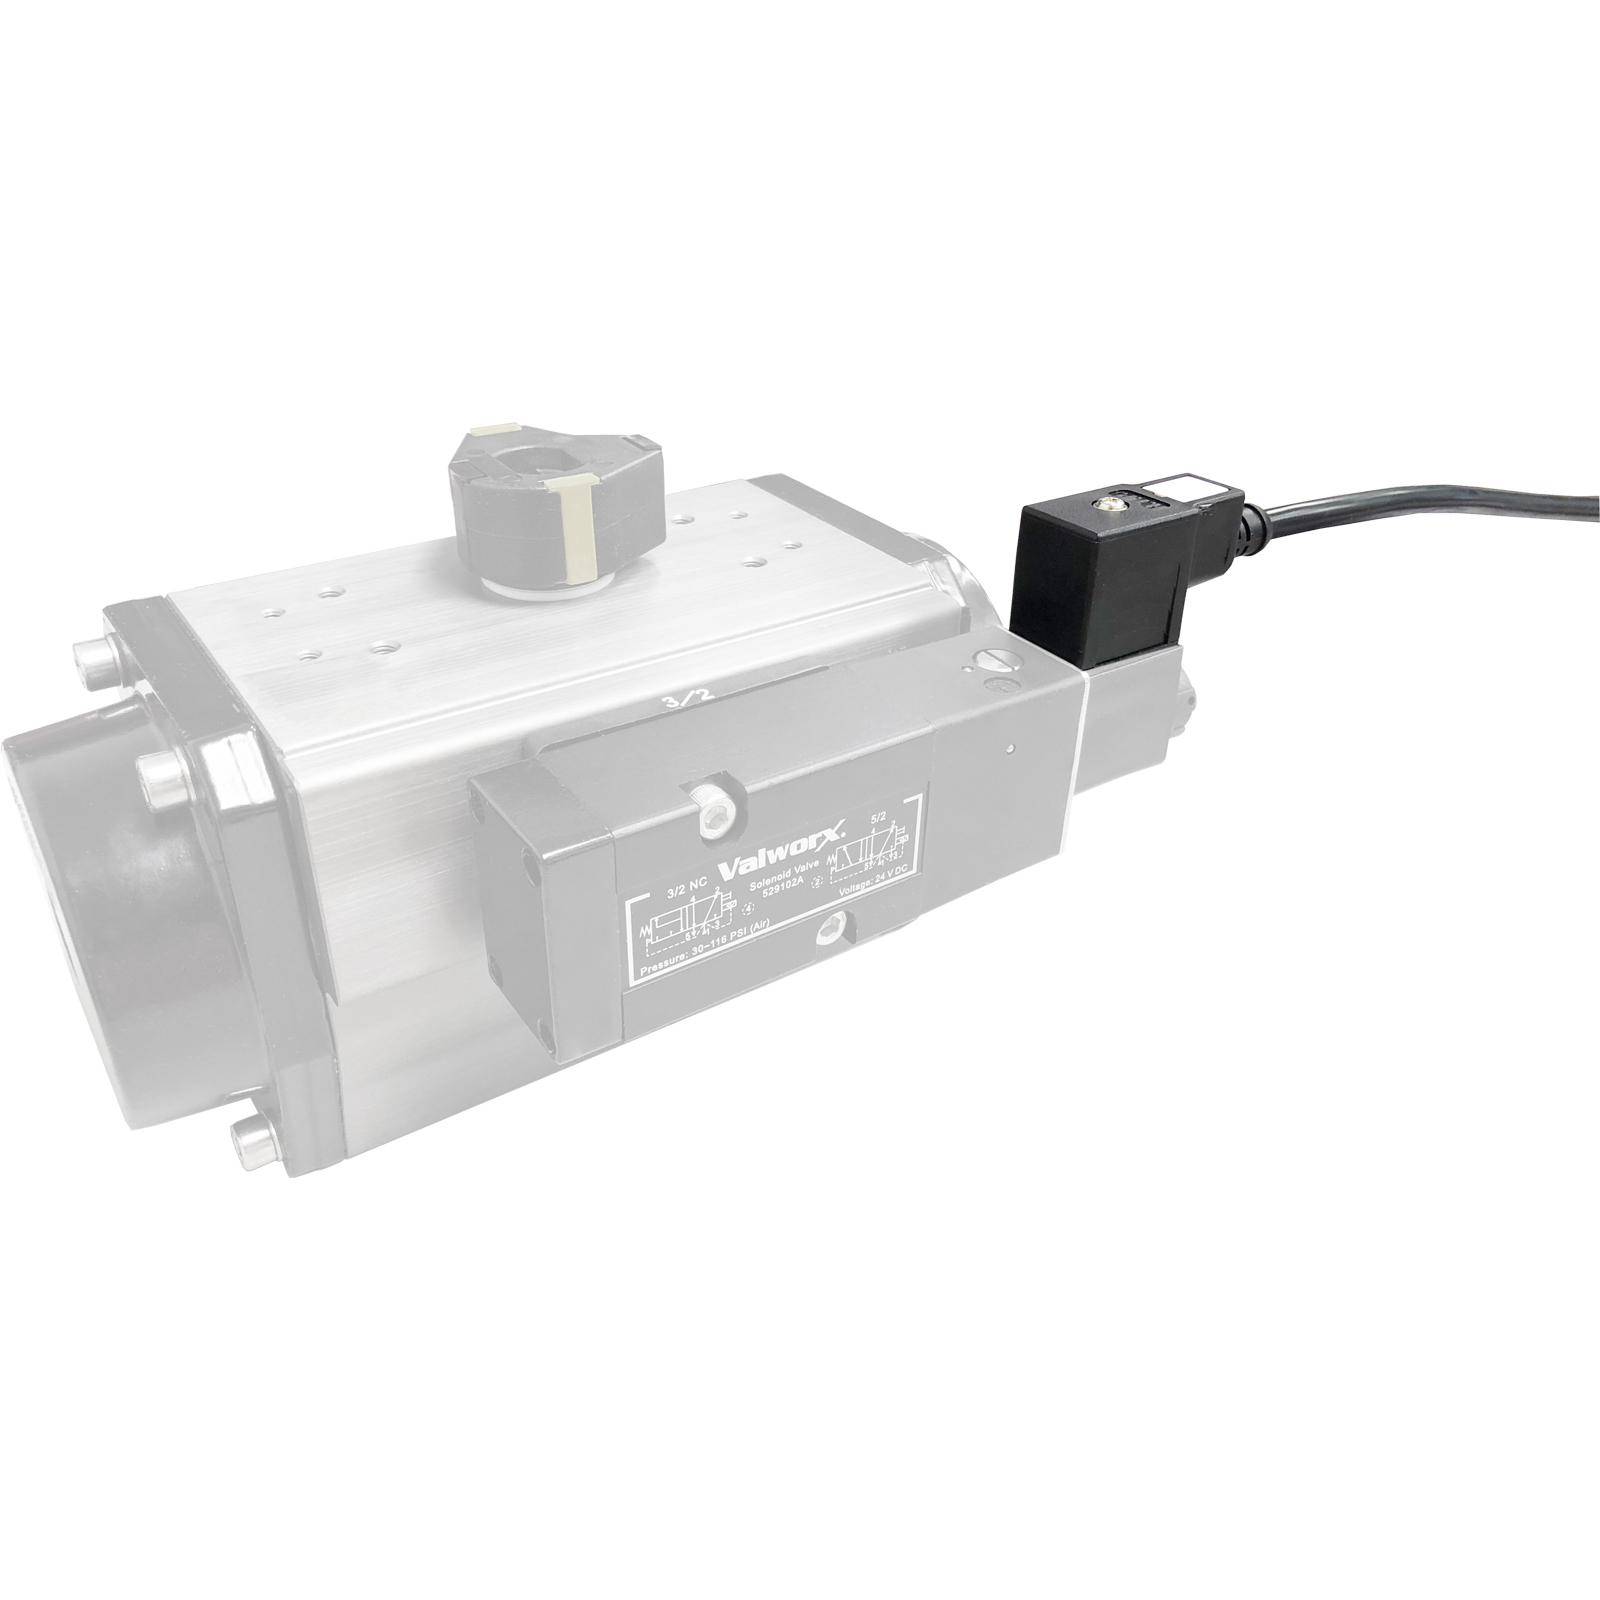 ISO DIN Plug with 16ft Cable for Solenoid Valves